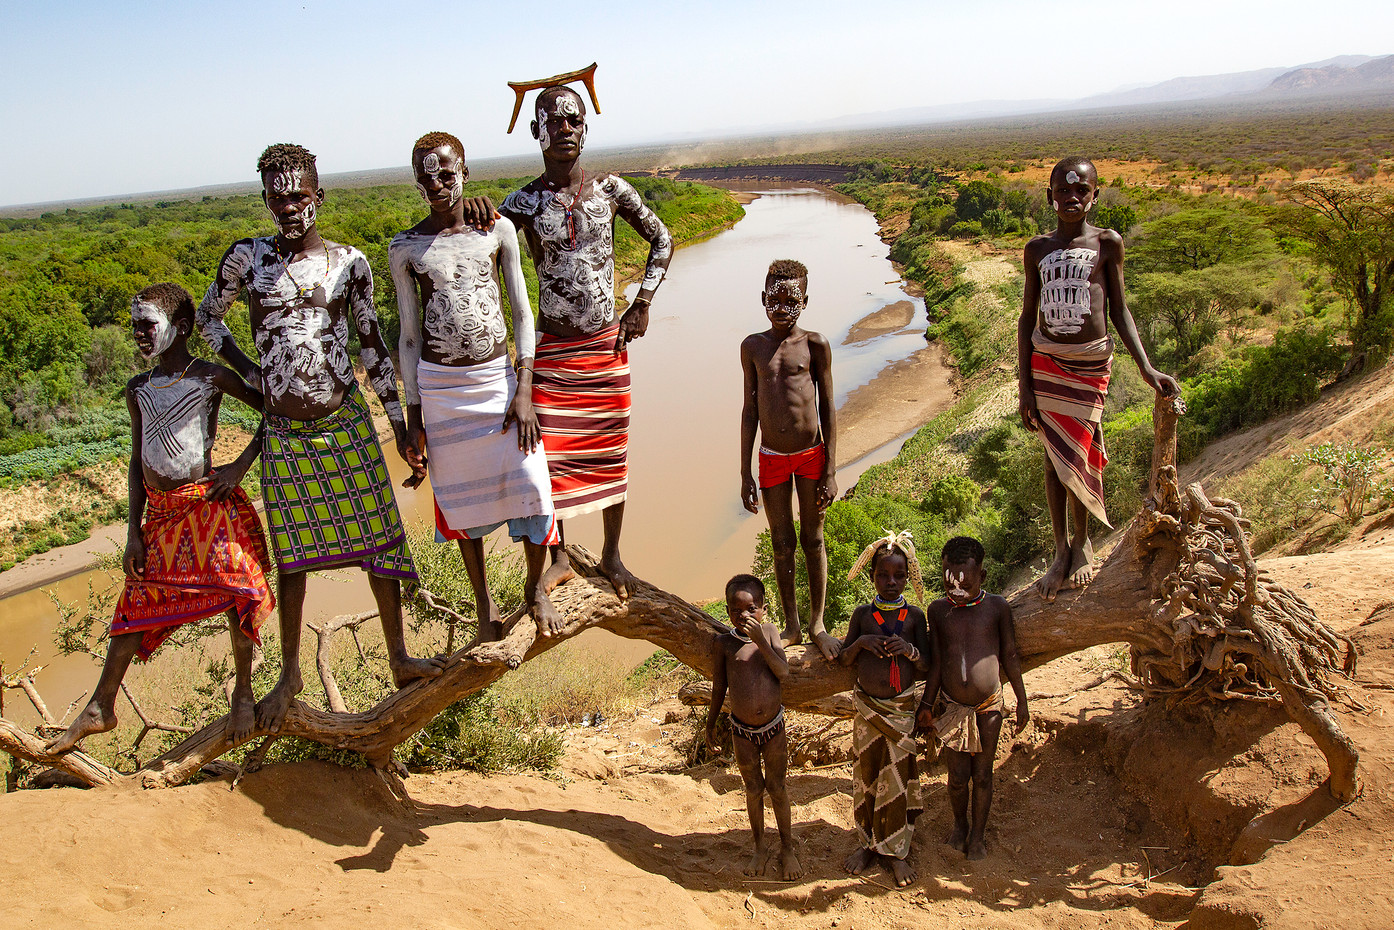 Karo children on the Omo River, Ethiopia